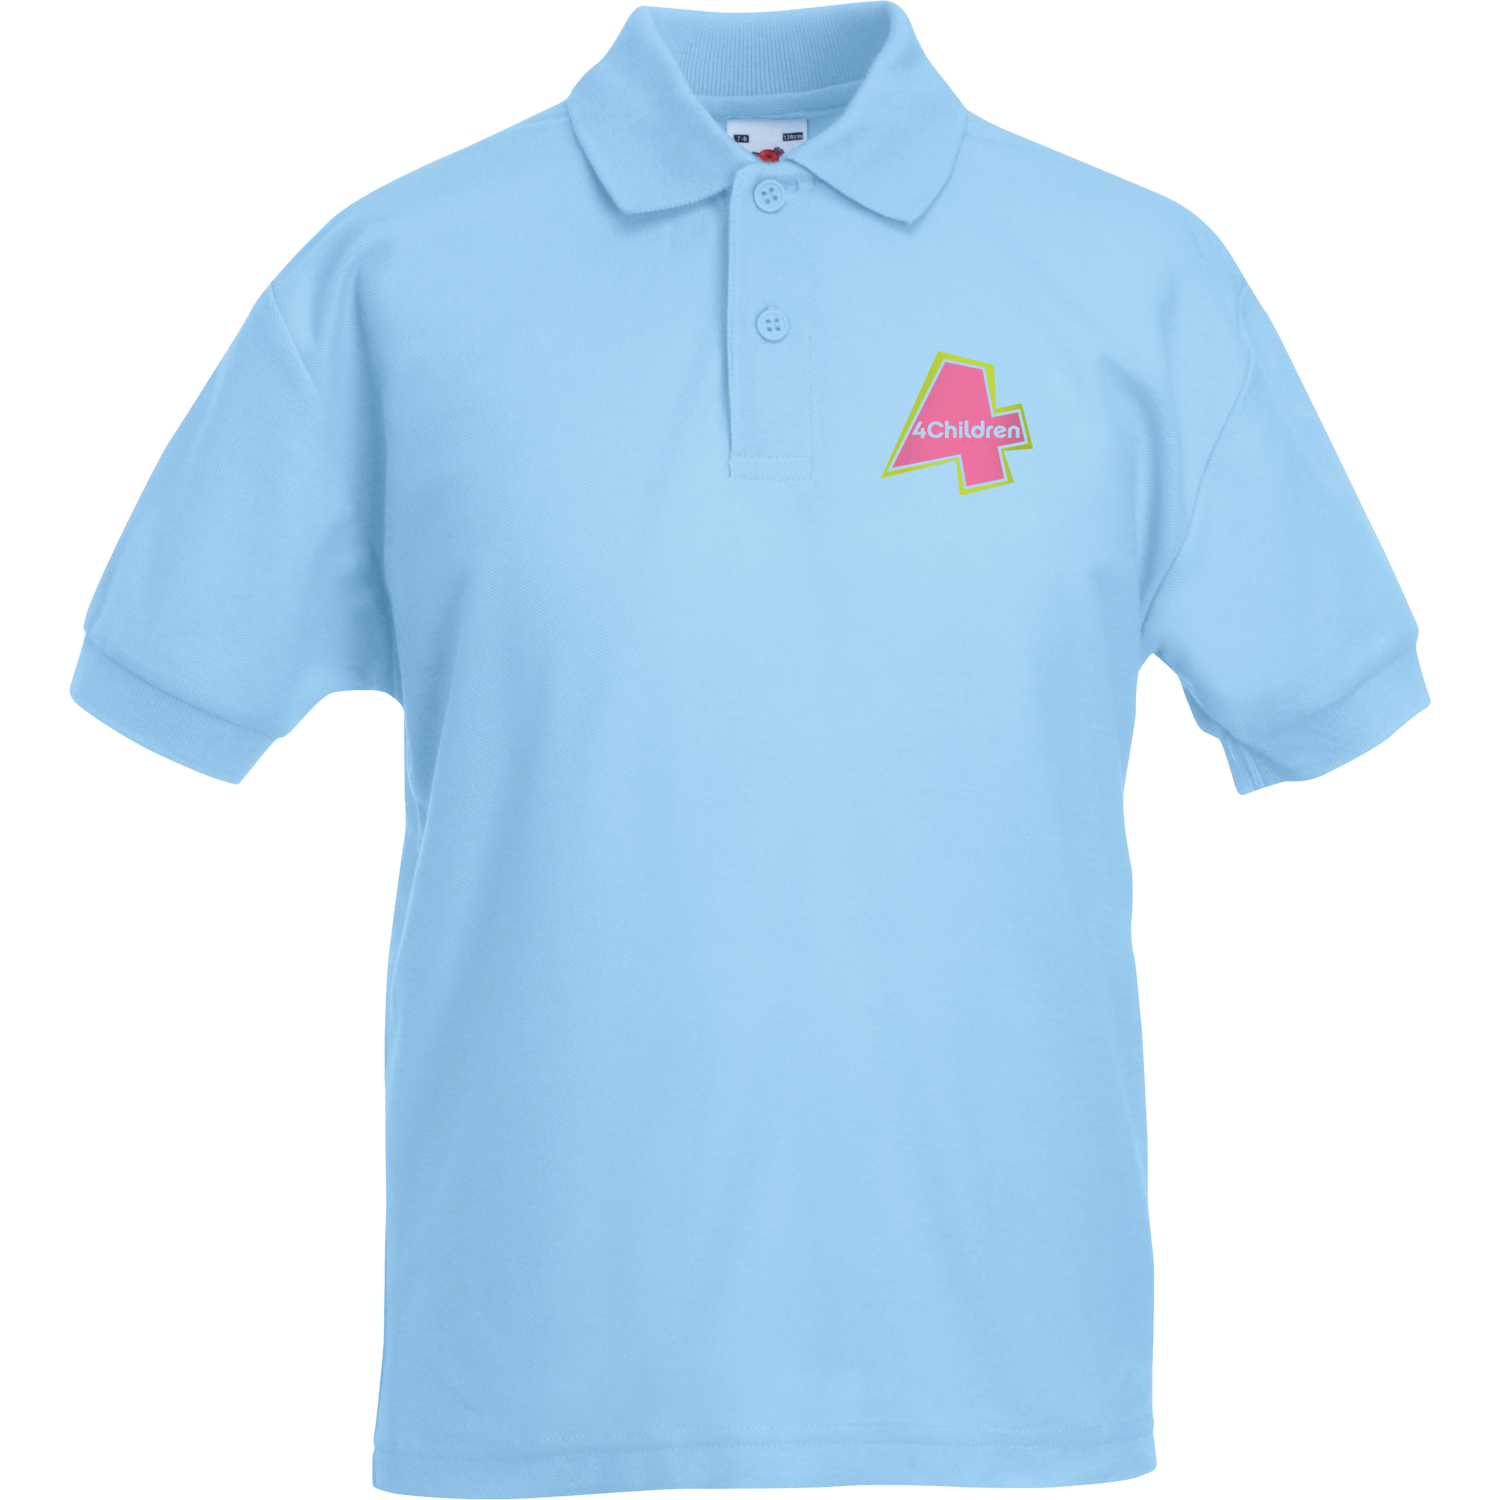 Fruit of the Loom Kids Embroidered Polo Shirts